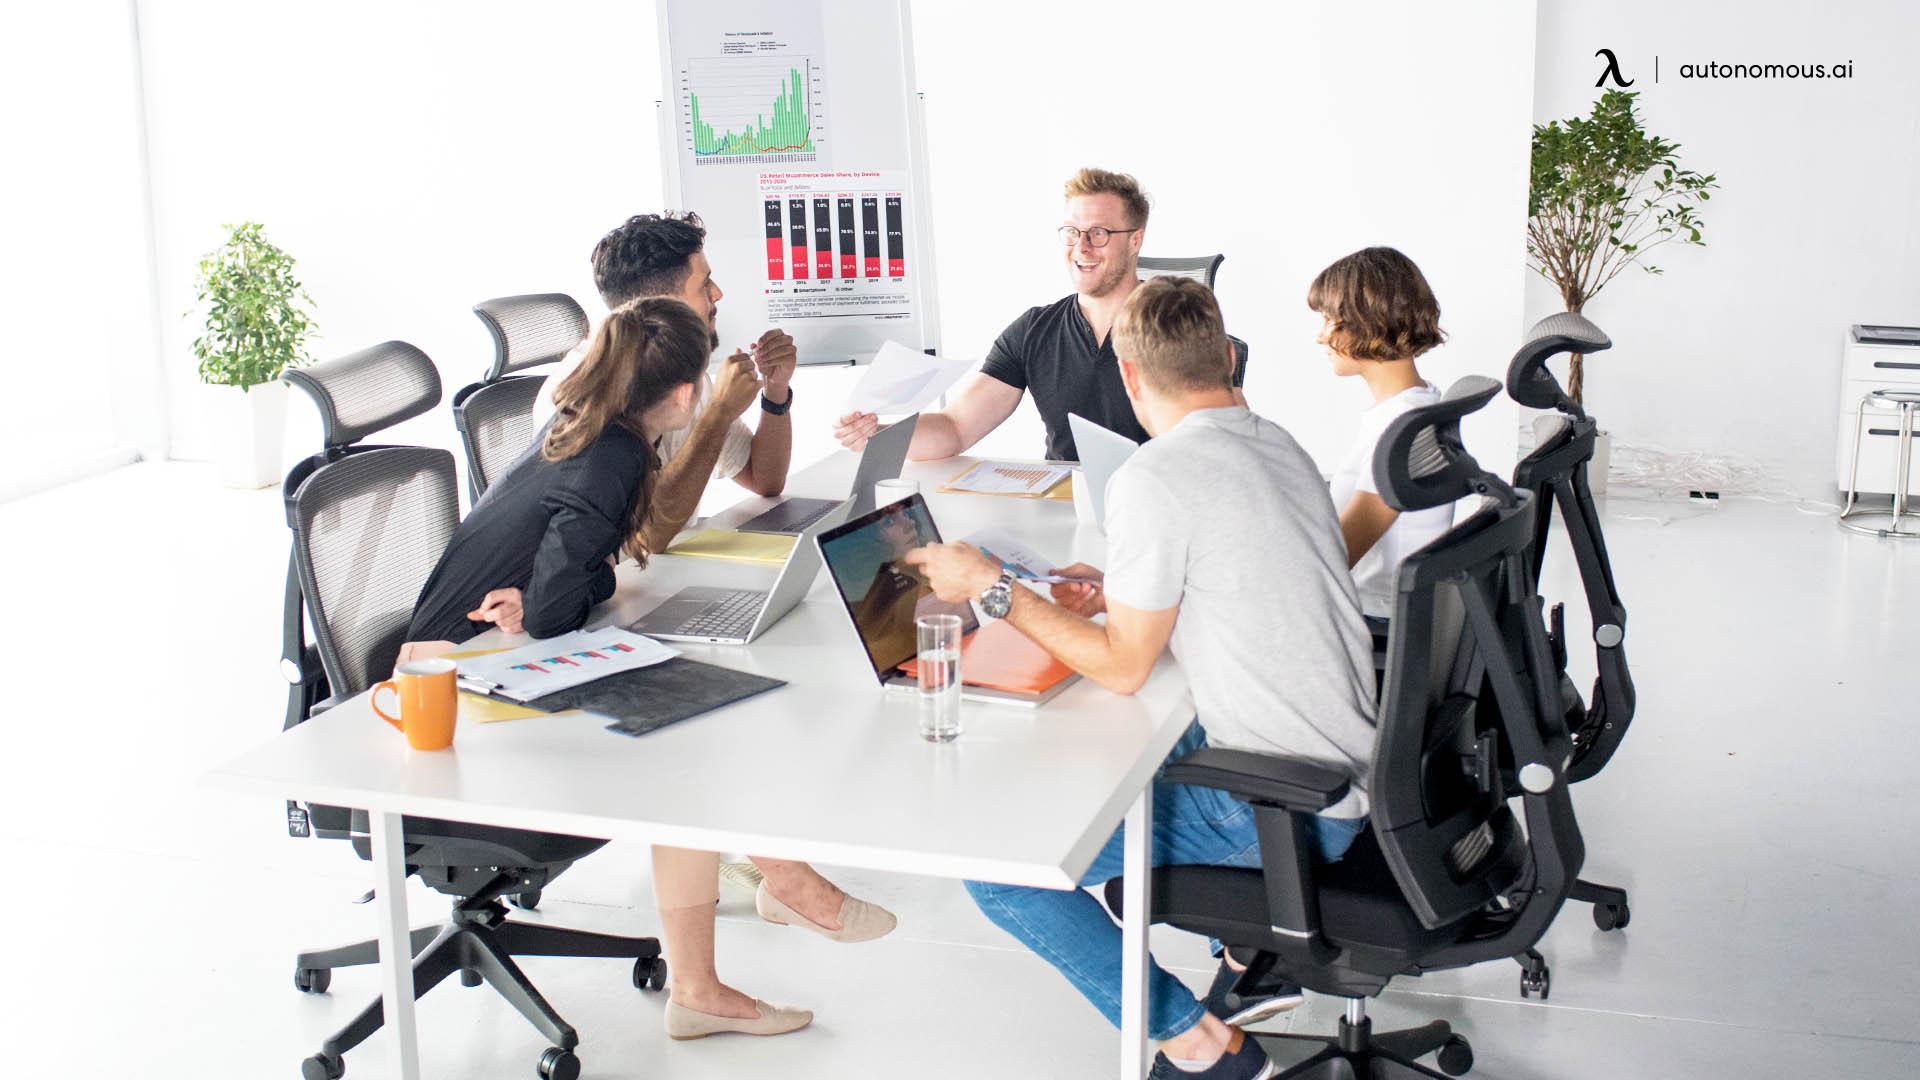 ow Can Businesses Apply Flexible Work Schedules